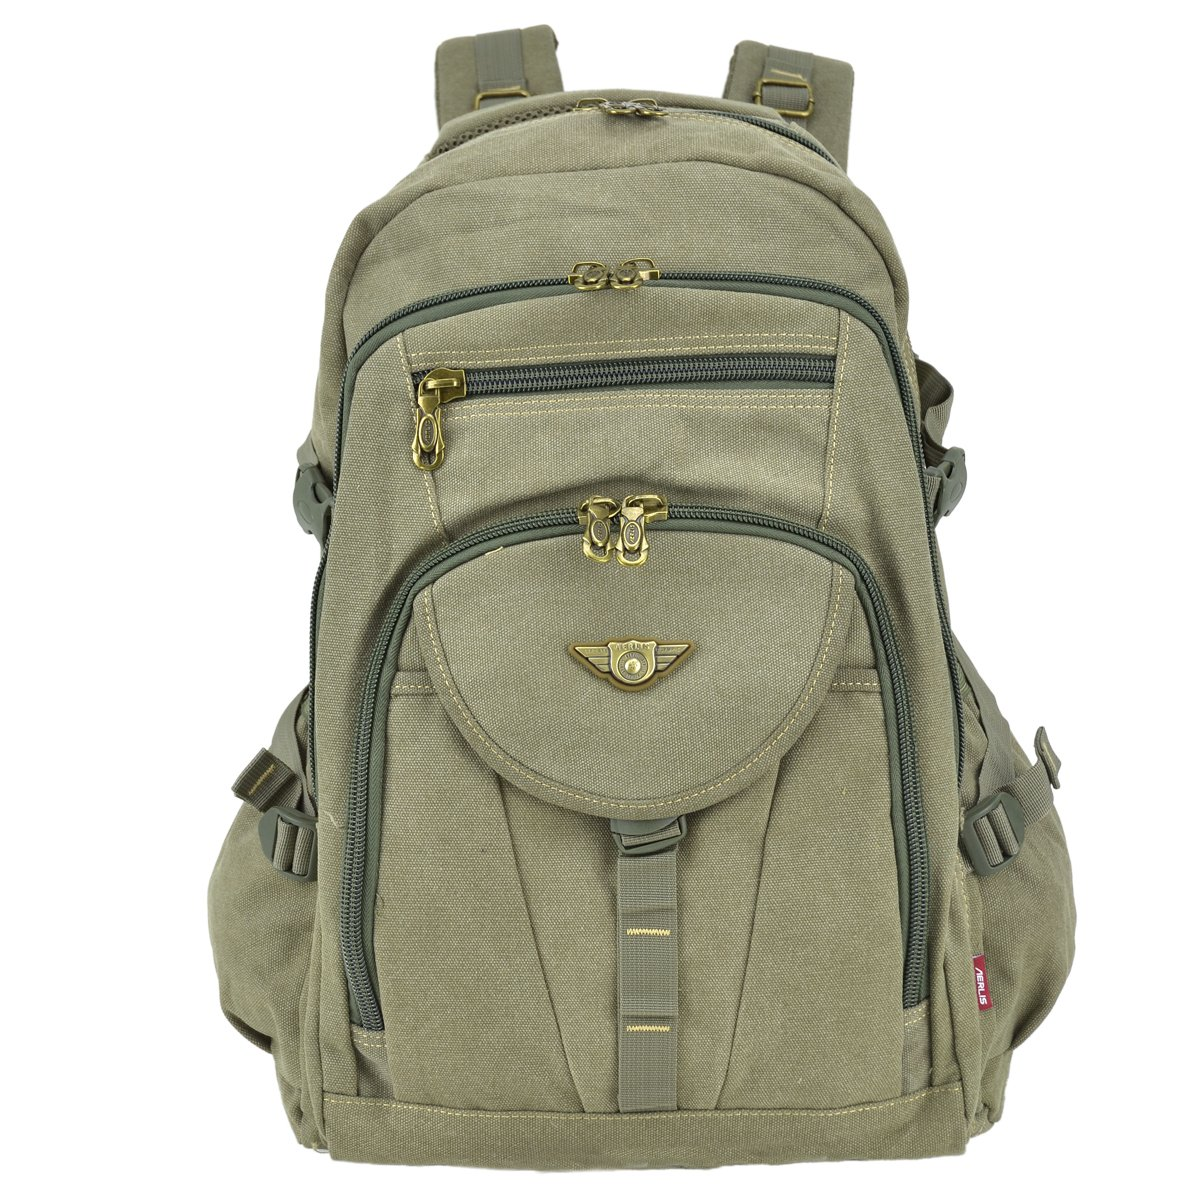 608c6c60e489 Amazon.com   Unisex Large Capacity Outdoor Vintage Canvas Adventure  Travel Camping Hiking School Backpack Daypack Rucksack with 3 Compartments  (9118 Army ...